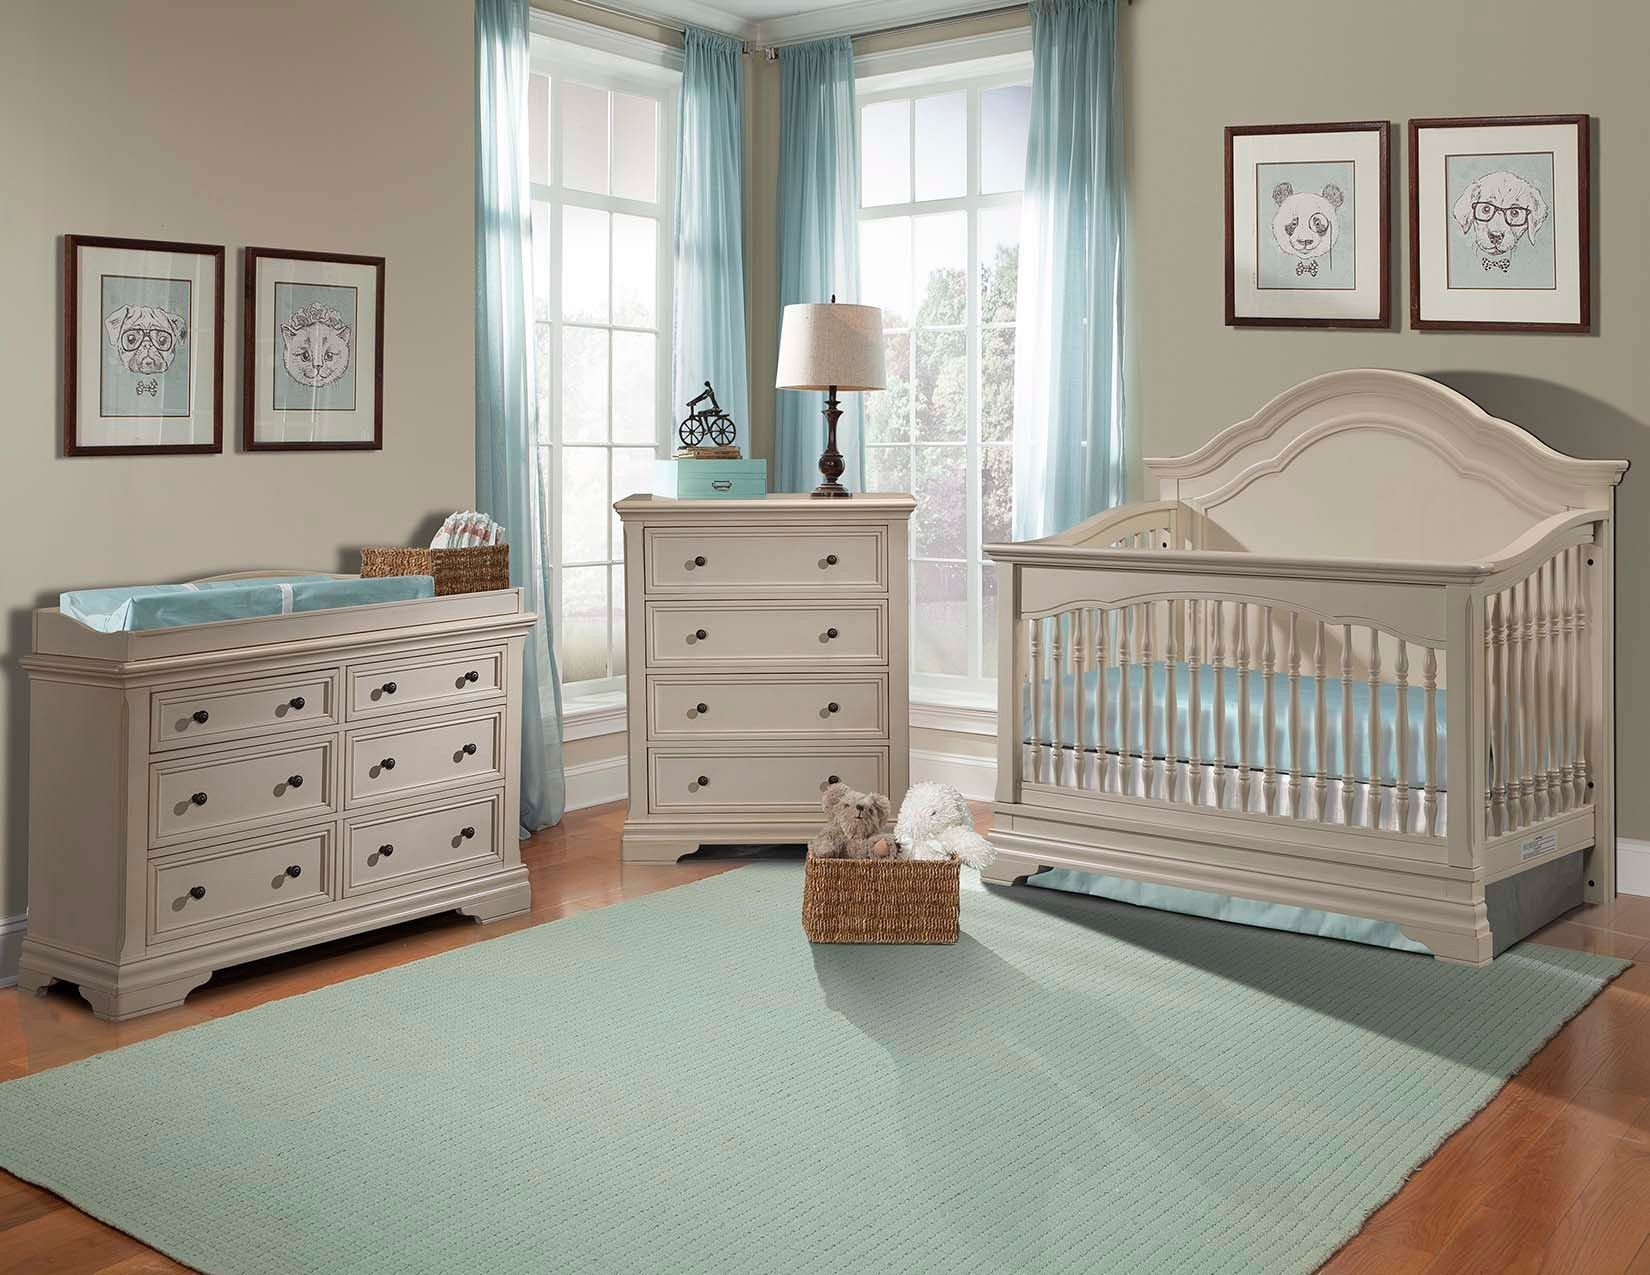 Best Stella Baby And Child Athena 3 Piece Nursery Set In Belgium Cream Baby Nursery Baby Nursery With Pictures